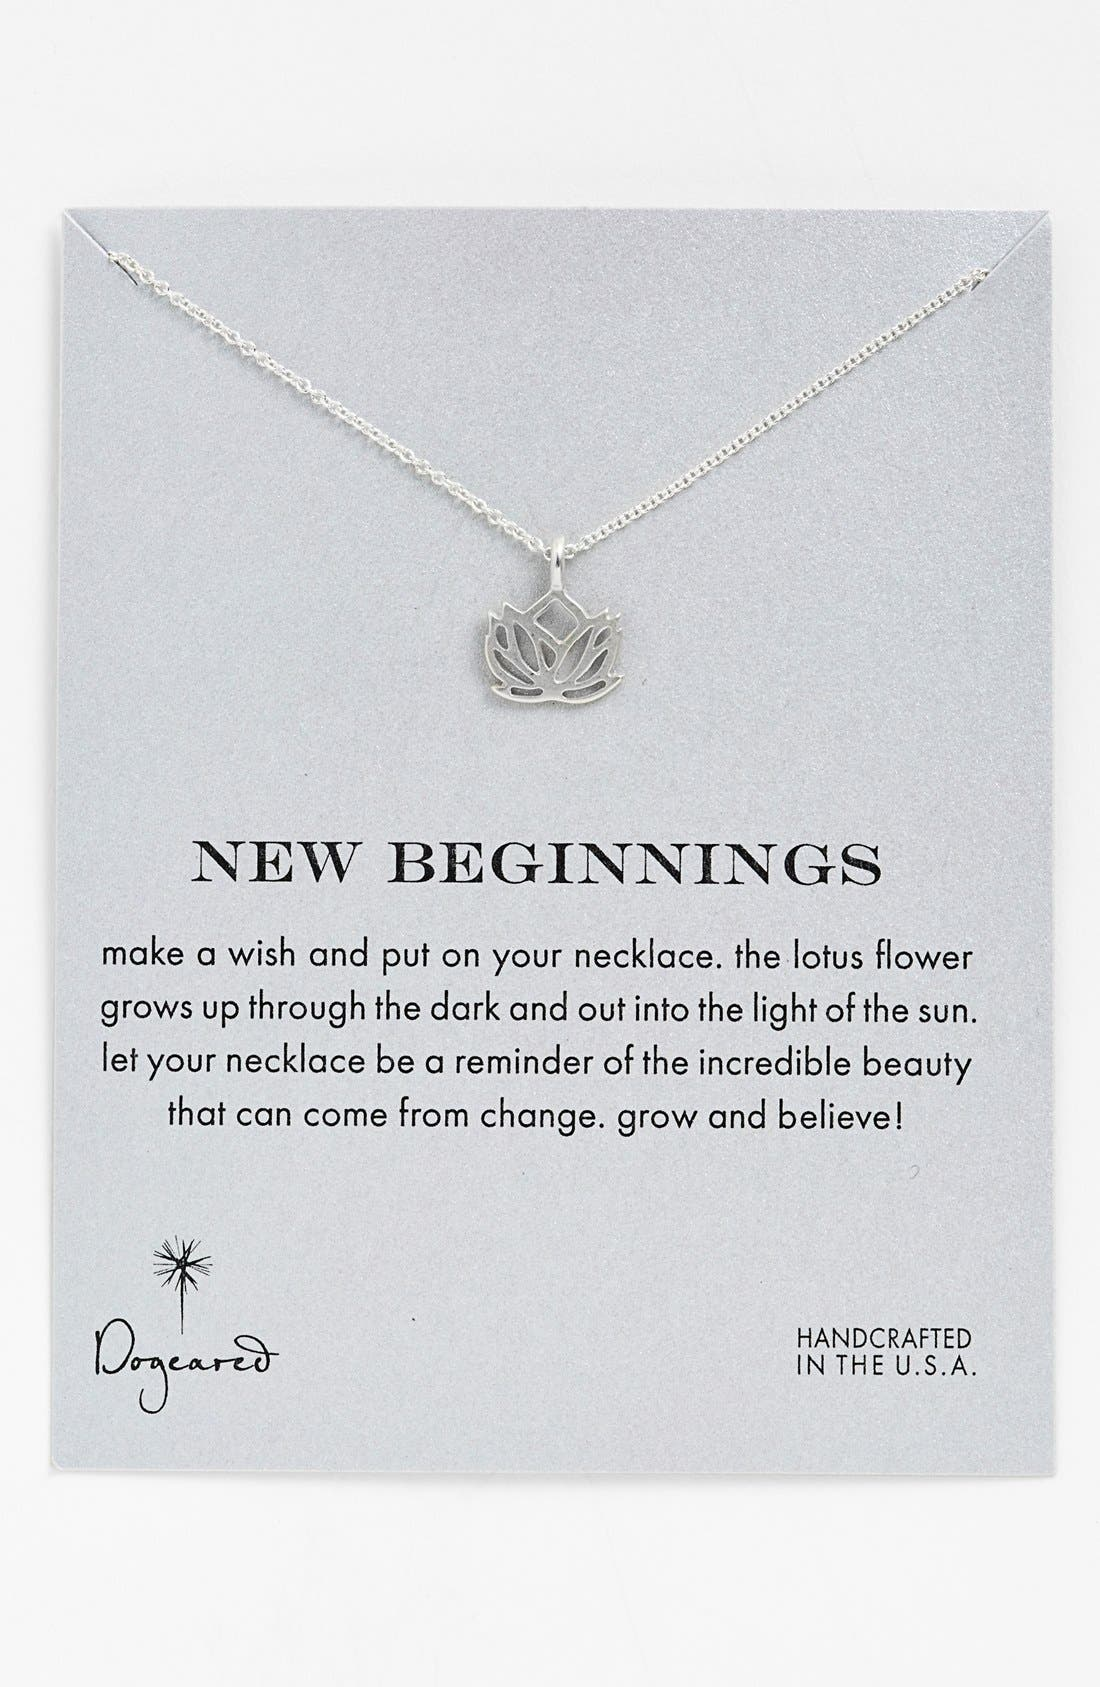 Alternate Image 1 Selected - Dogeared 'New Beginnings' Lotus Pendant Necklace